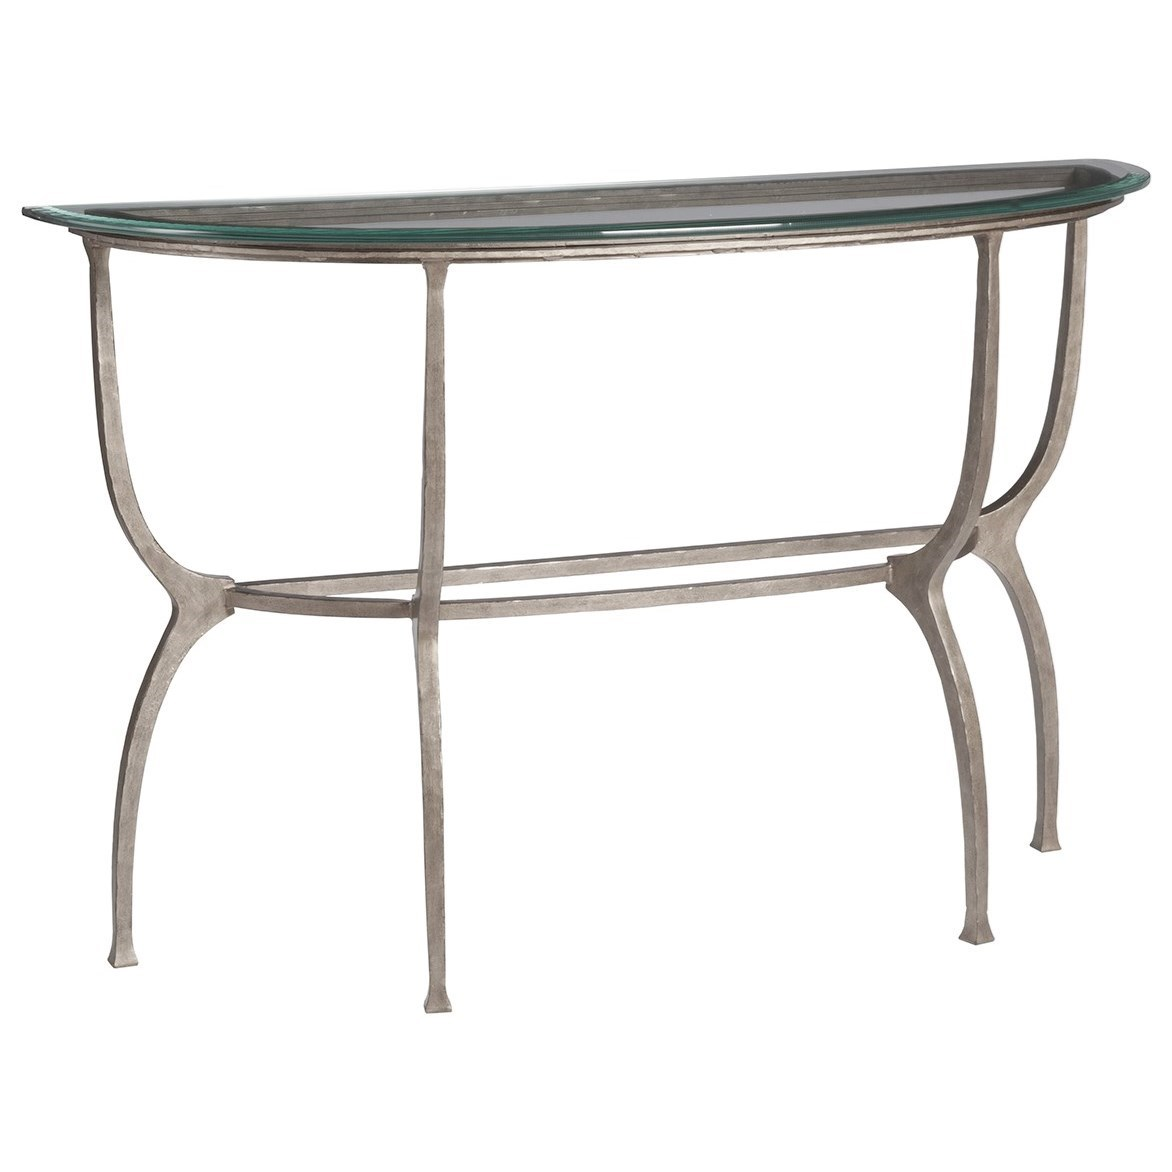 Metal Designs Patois Console by Artistica at Alison Craig Home Furnishings